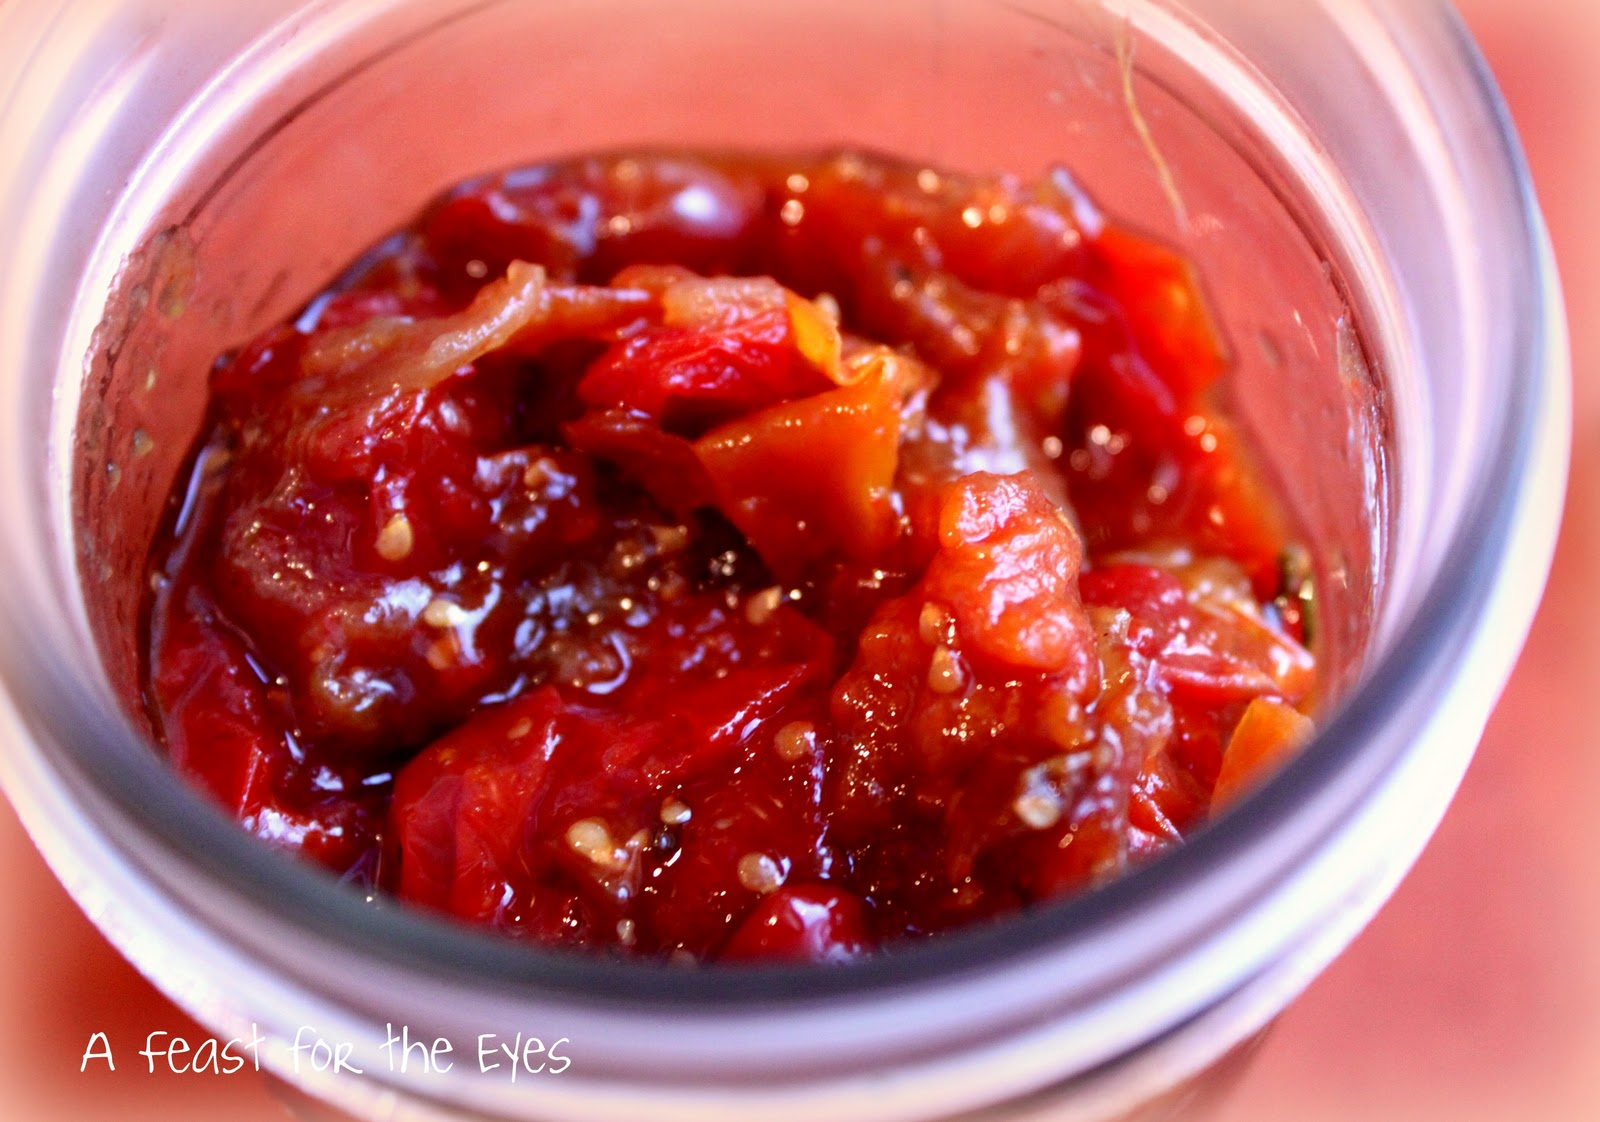 Feast for the Eyes: Savory Tomato Jam